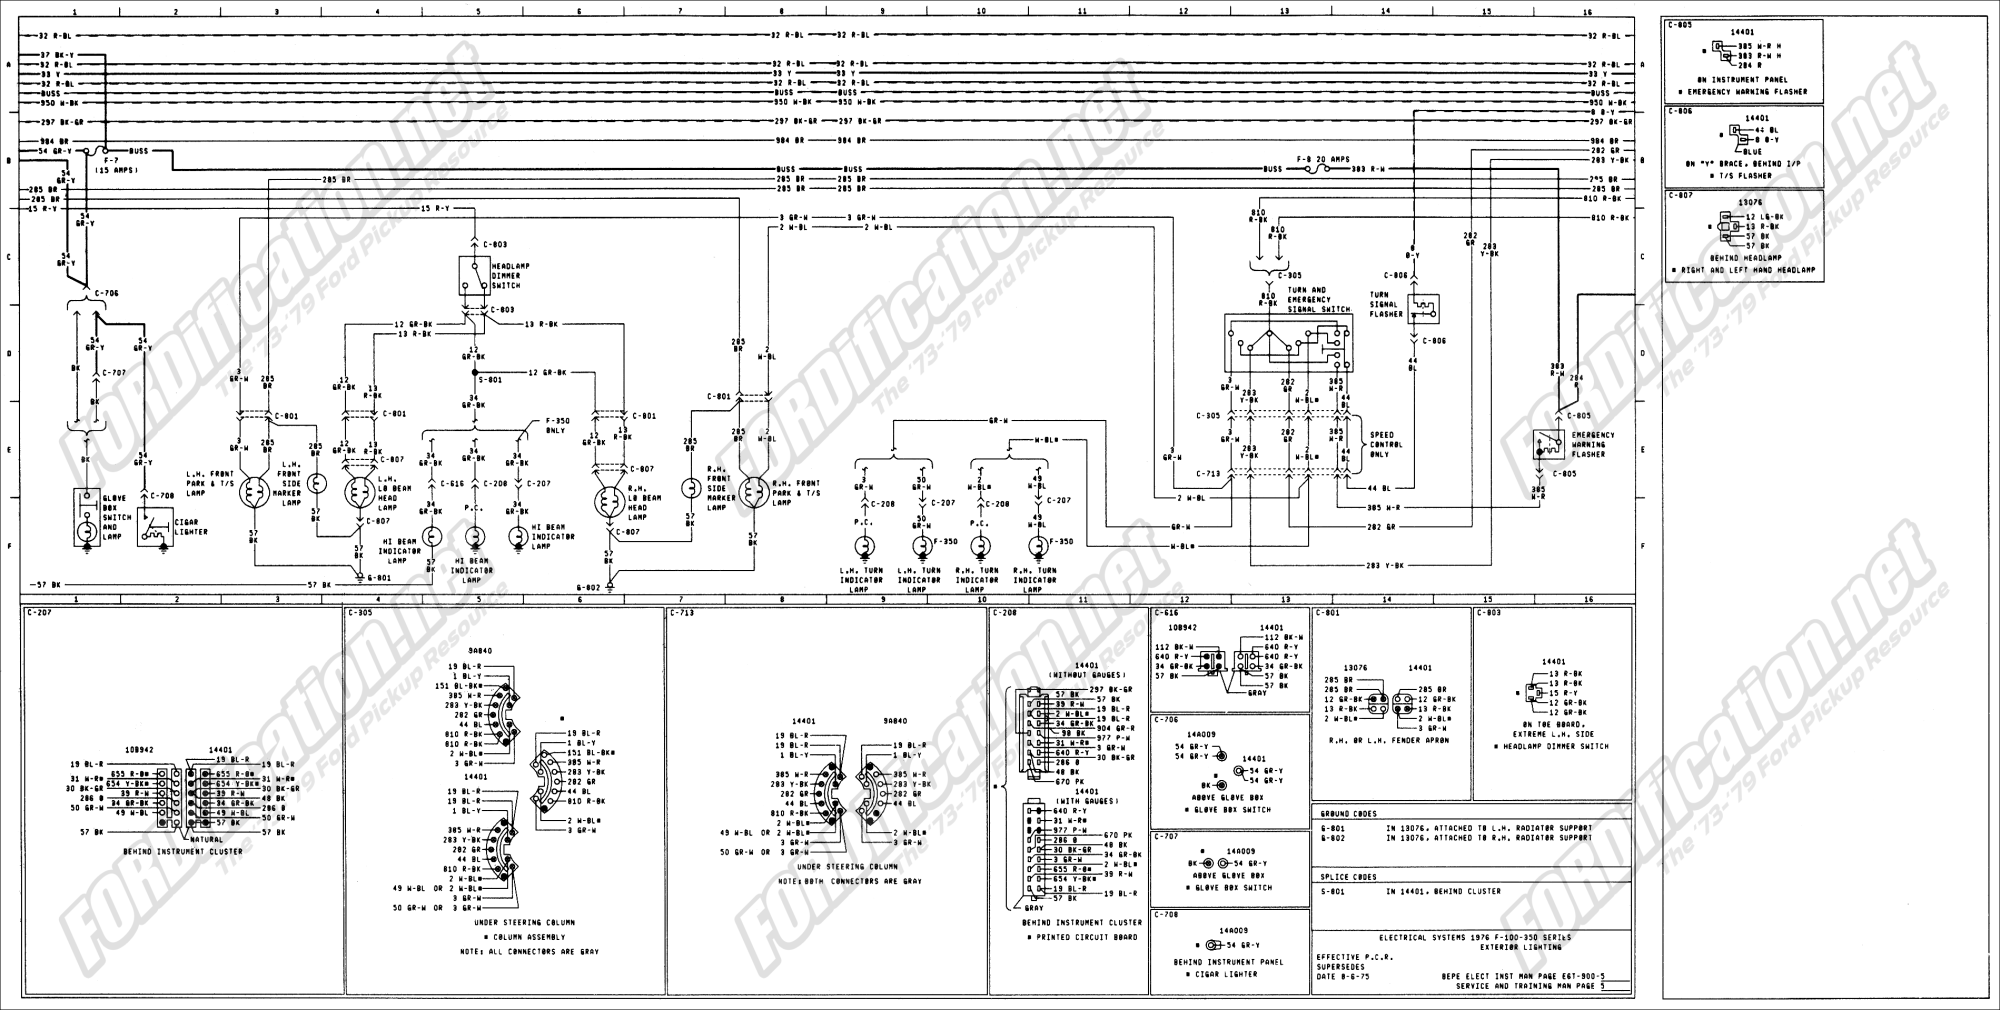 hight resolution of 1975 ford truck wiring diagrams just wiring data rh ag skiphire co uk 1975 dodge truck